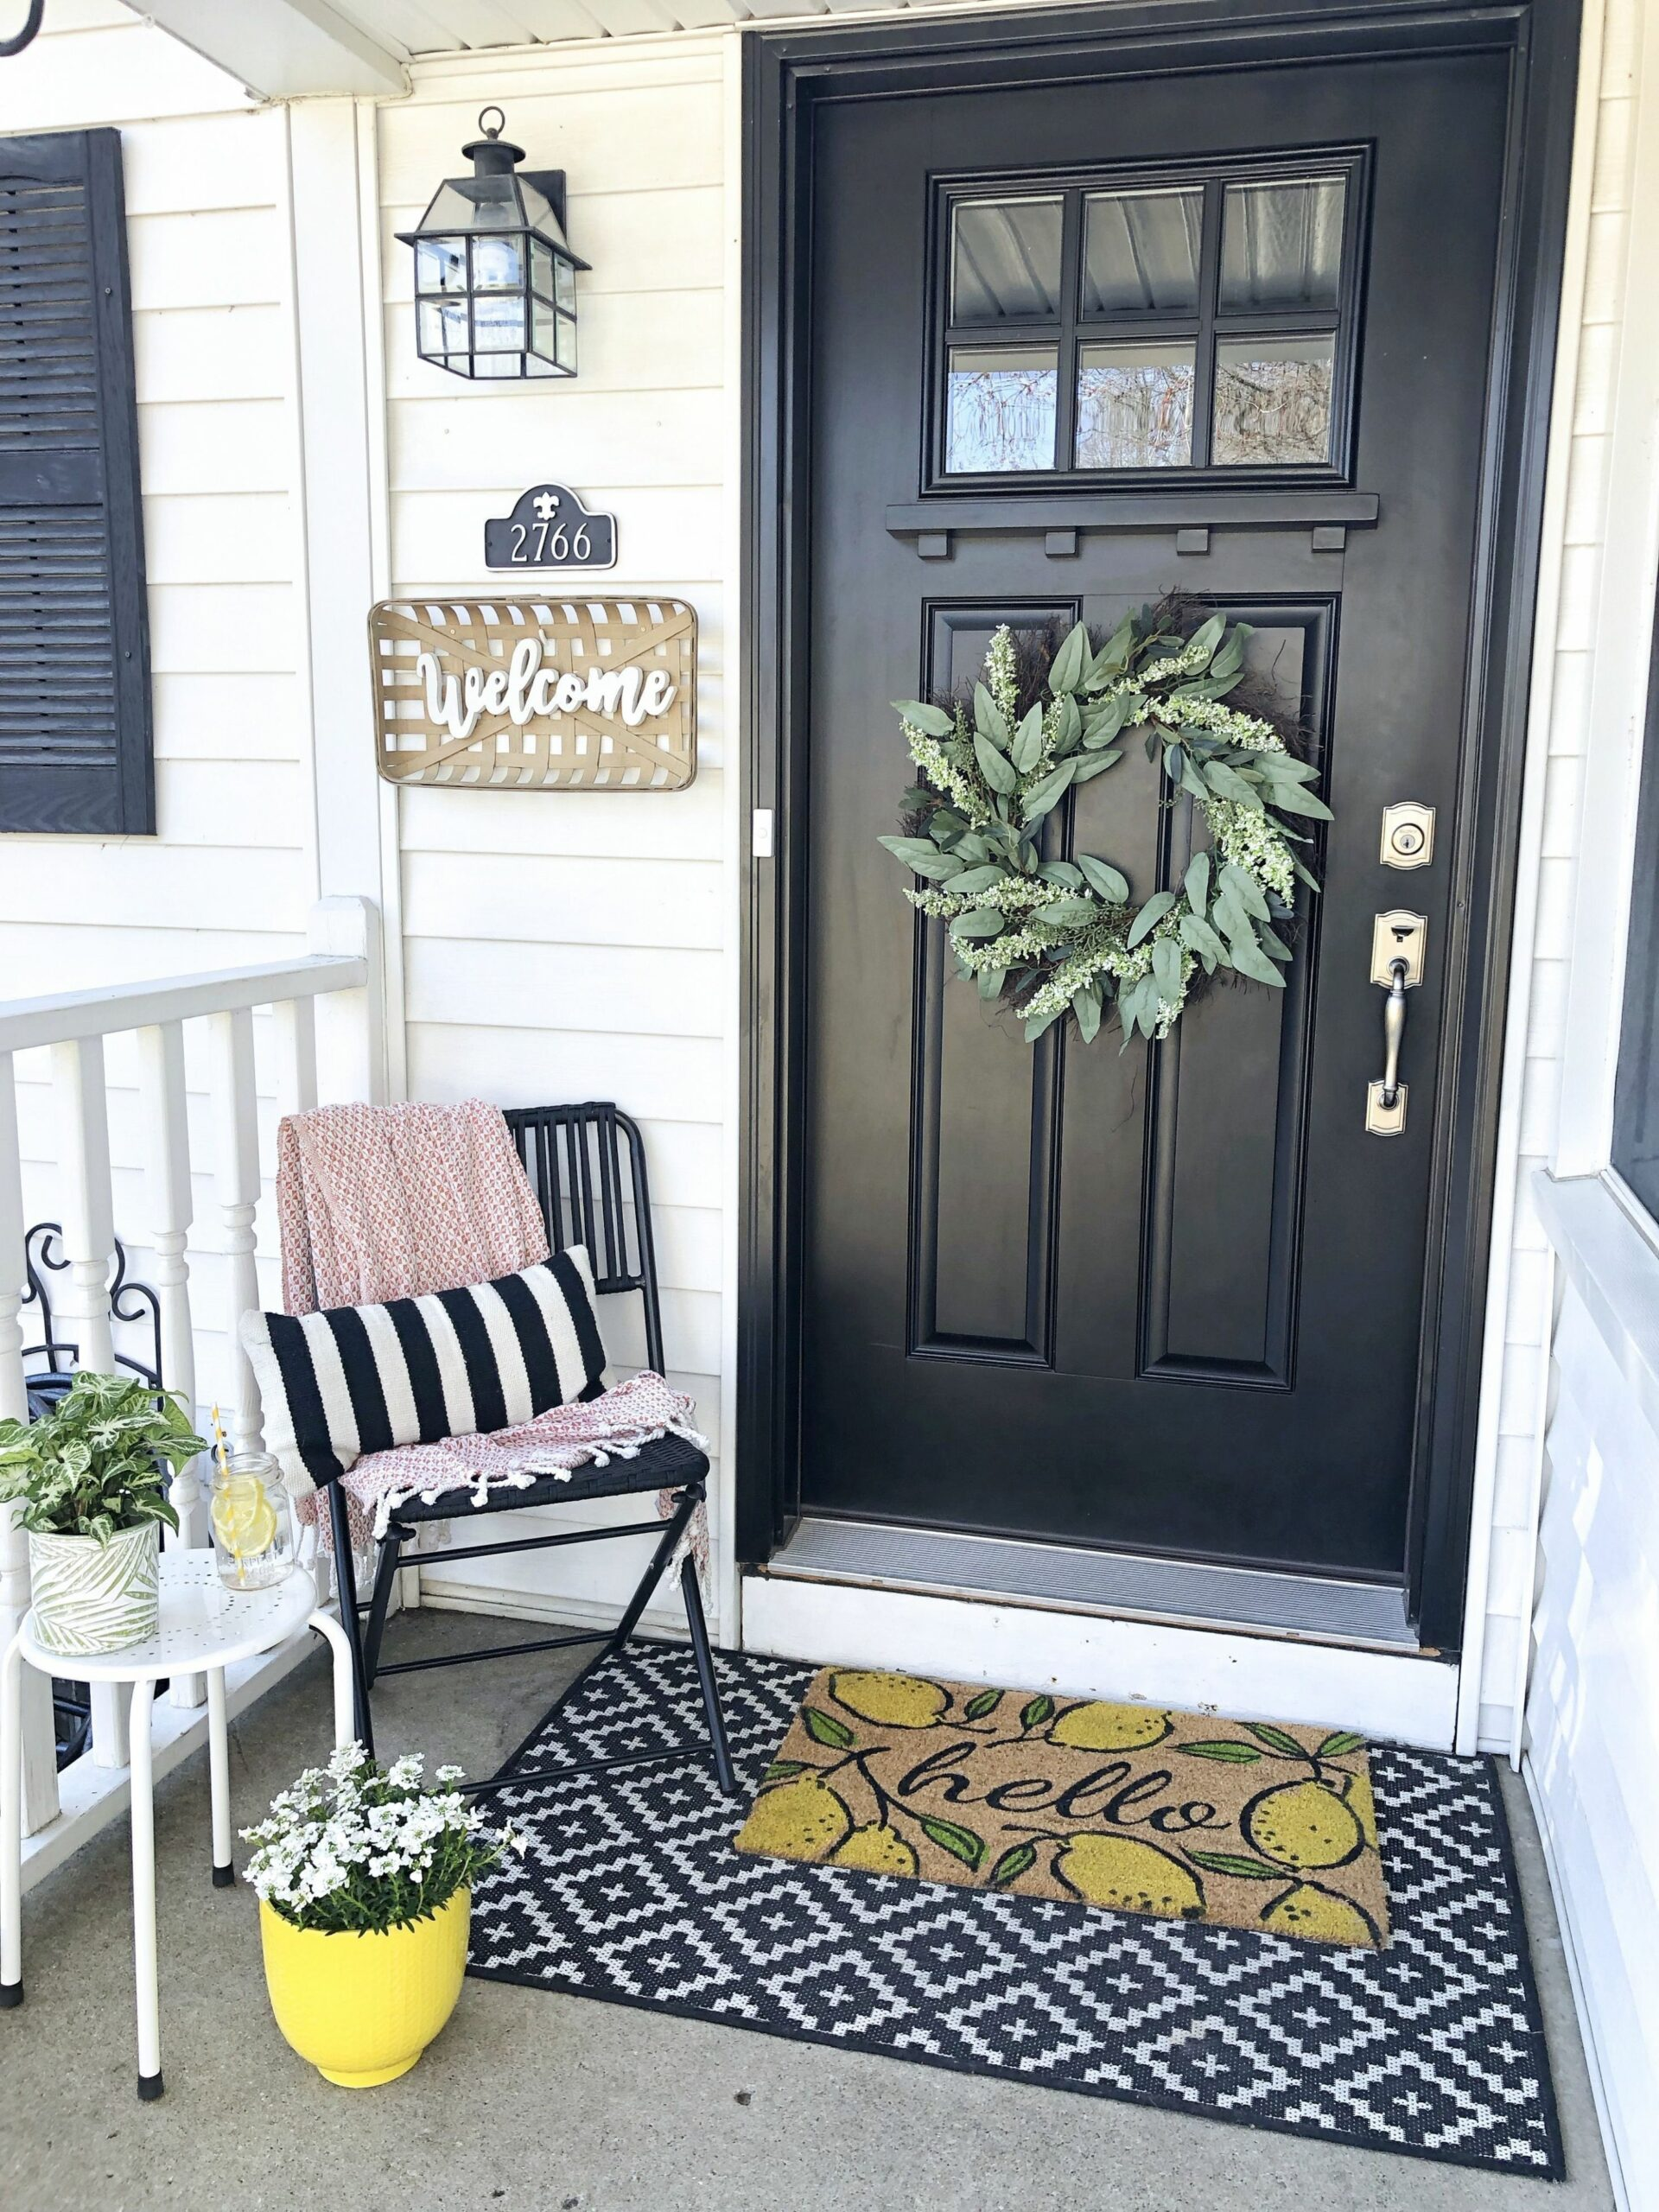 Pin on Welcome Home - front porch decor ideas